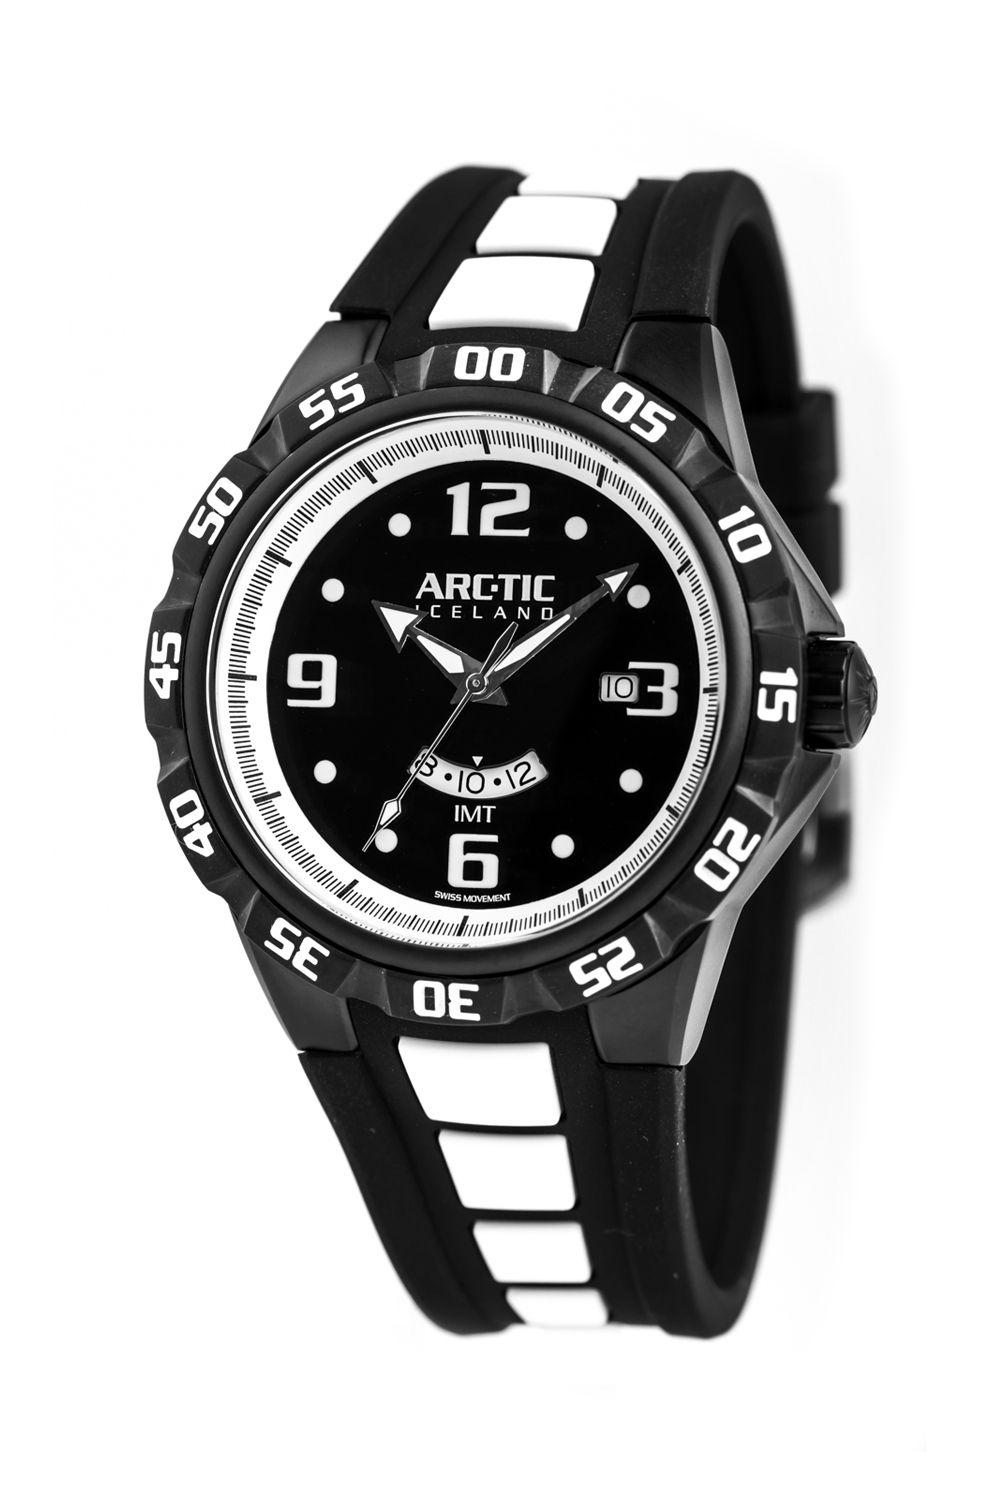 ARC-TIC Iceland IMT Ice - Learn More